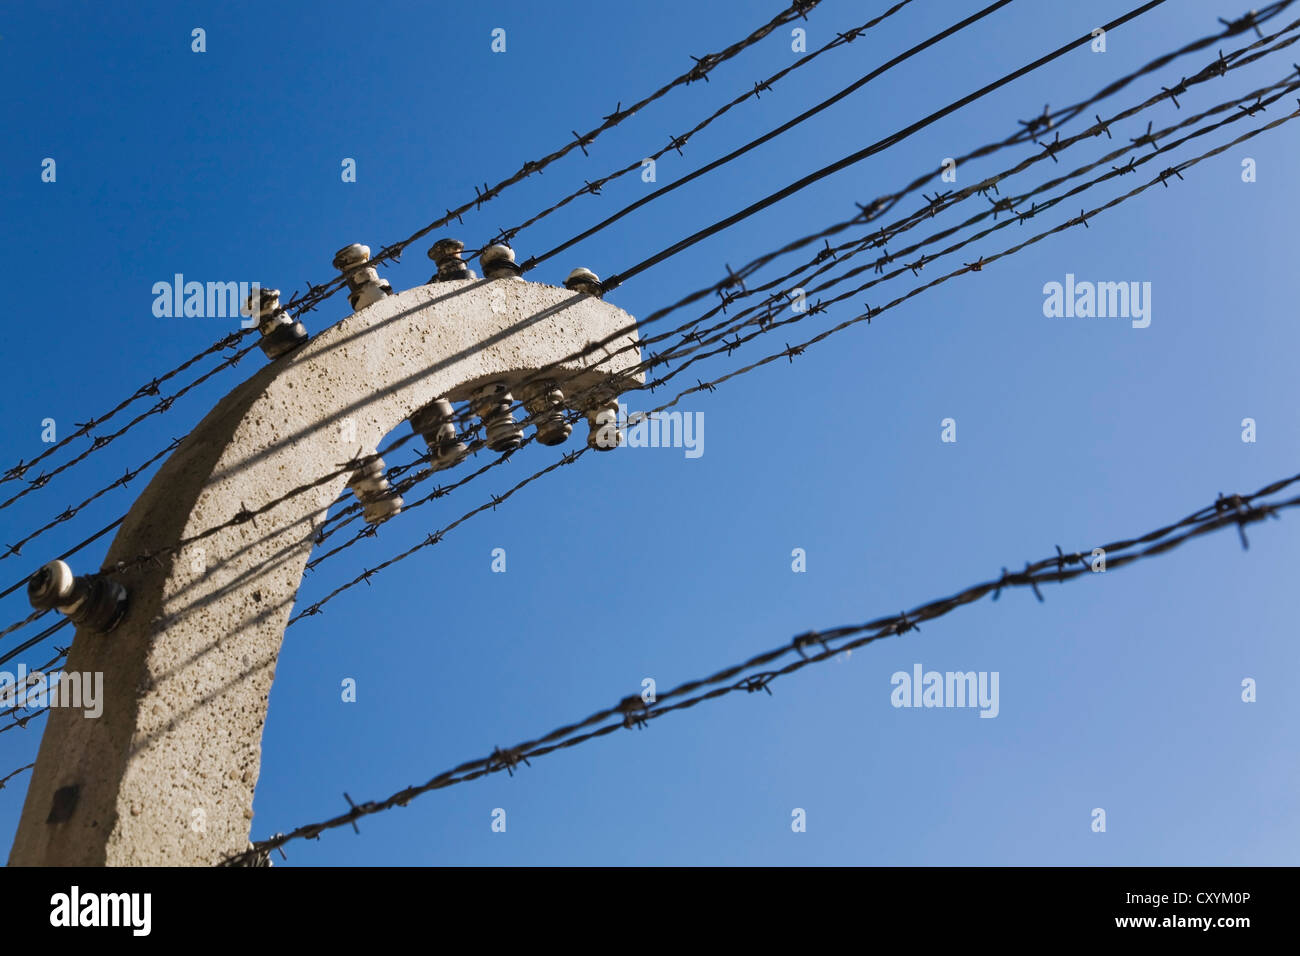 Barb wire electric fence inside the Auschwitz I former Nazi Concentration Camp, Auschwitz, Poland, Europe - Stock Image